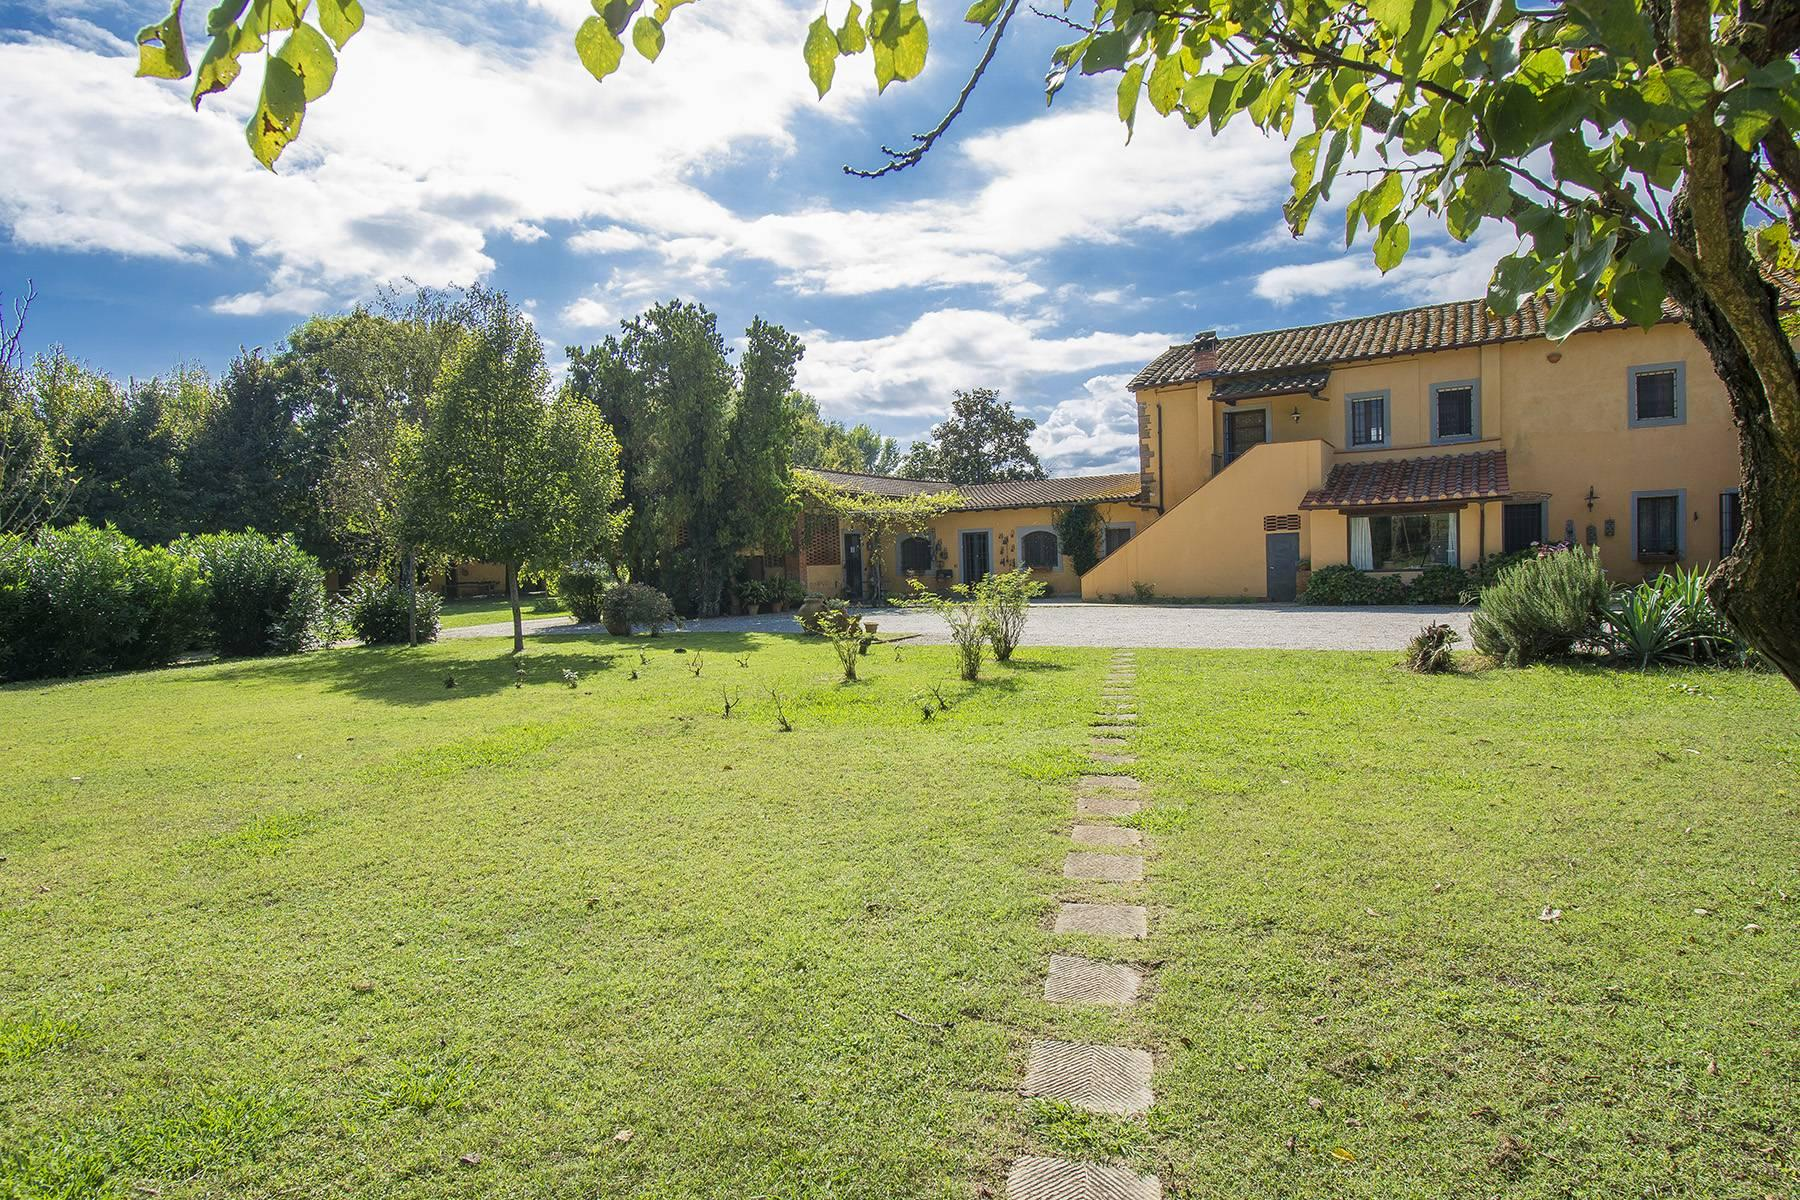 Equestrian farmhouse in the Tuscan countryside - 5